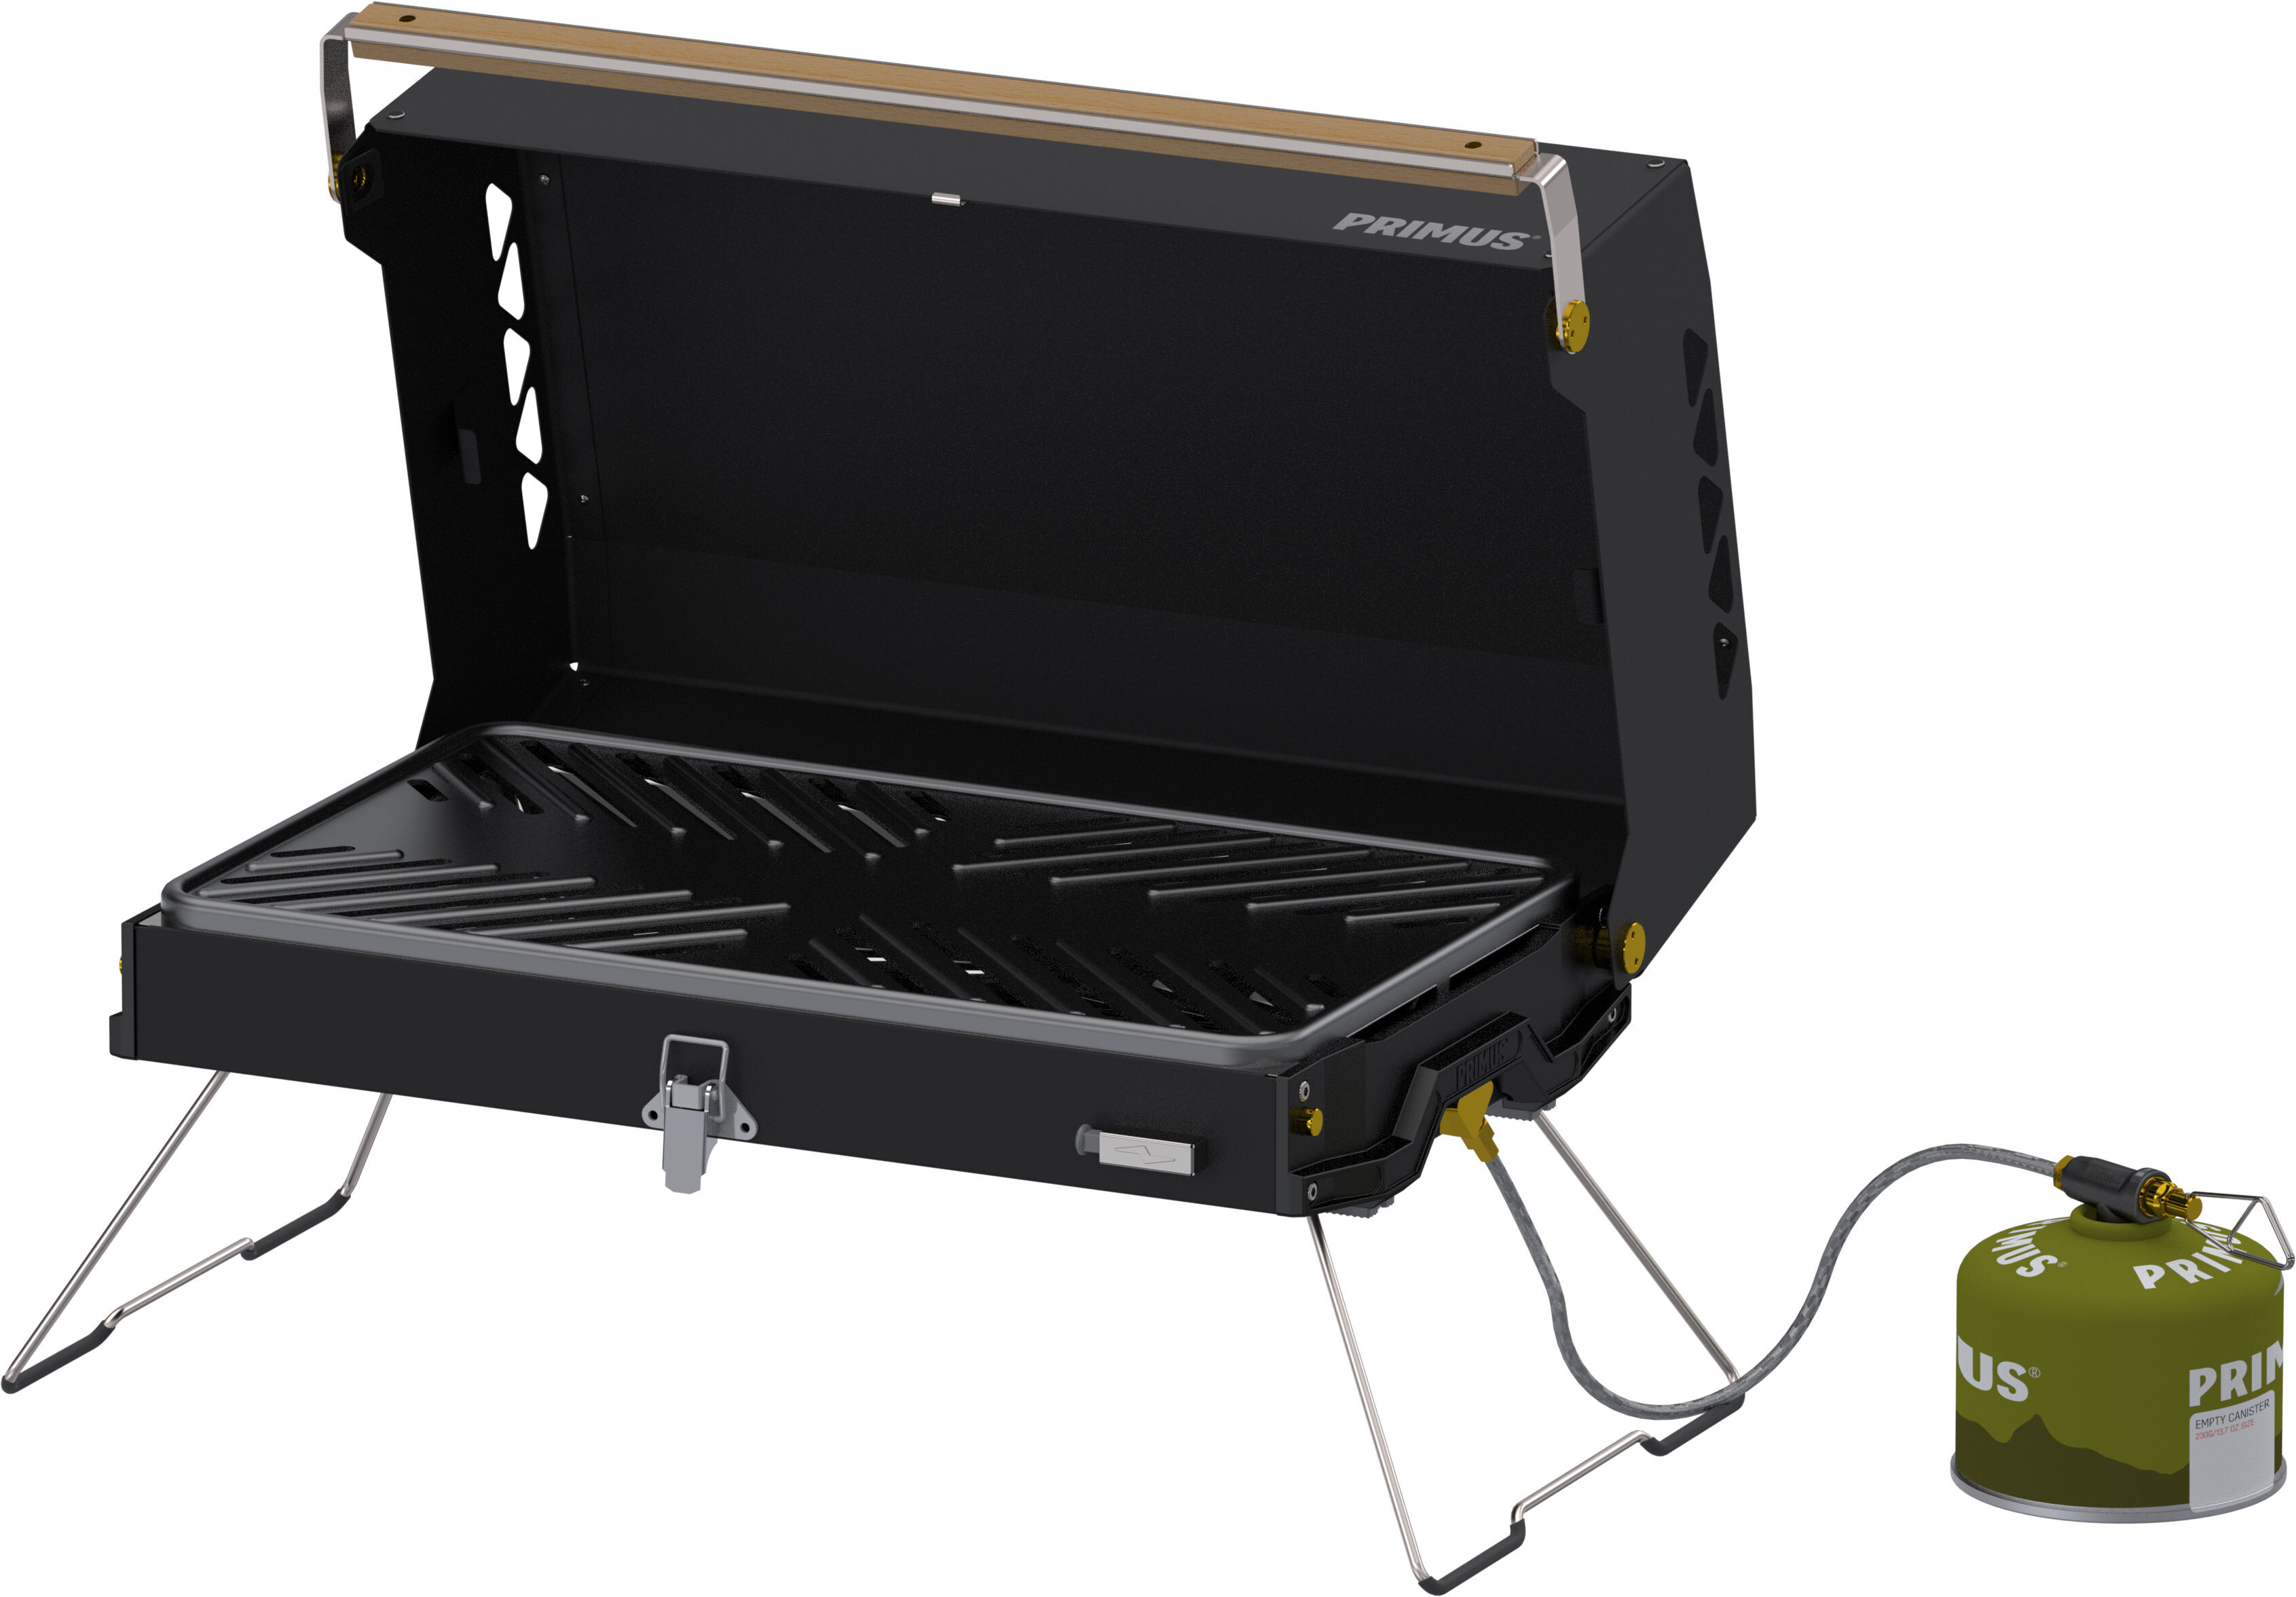 primus kuchoma grill | campz.ch